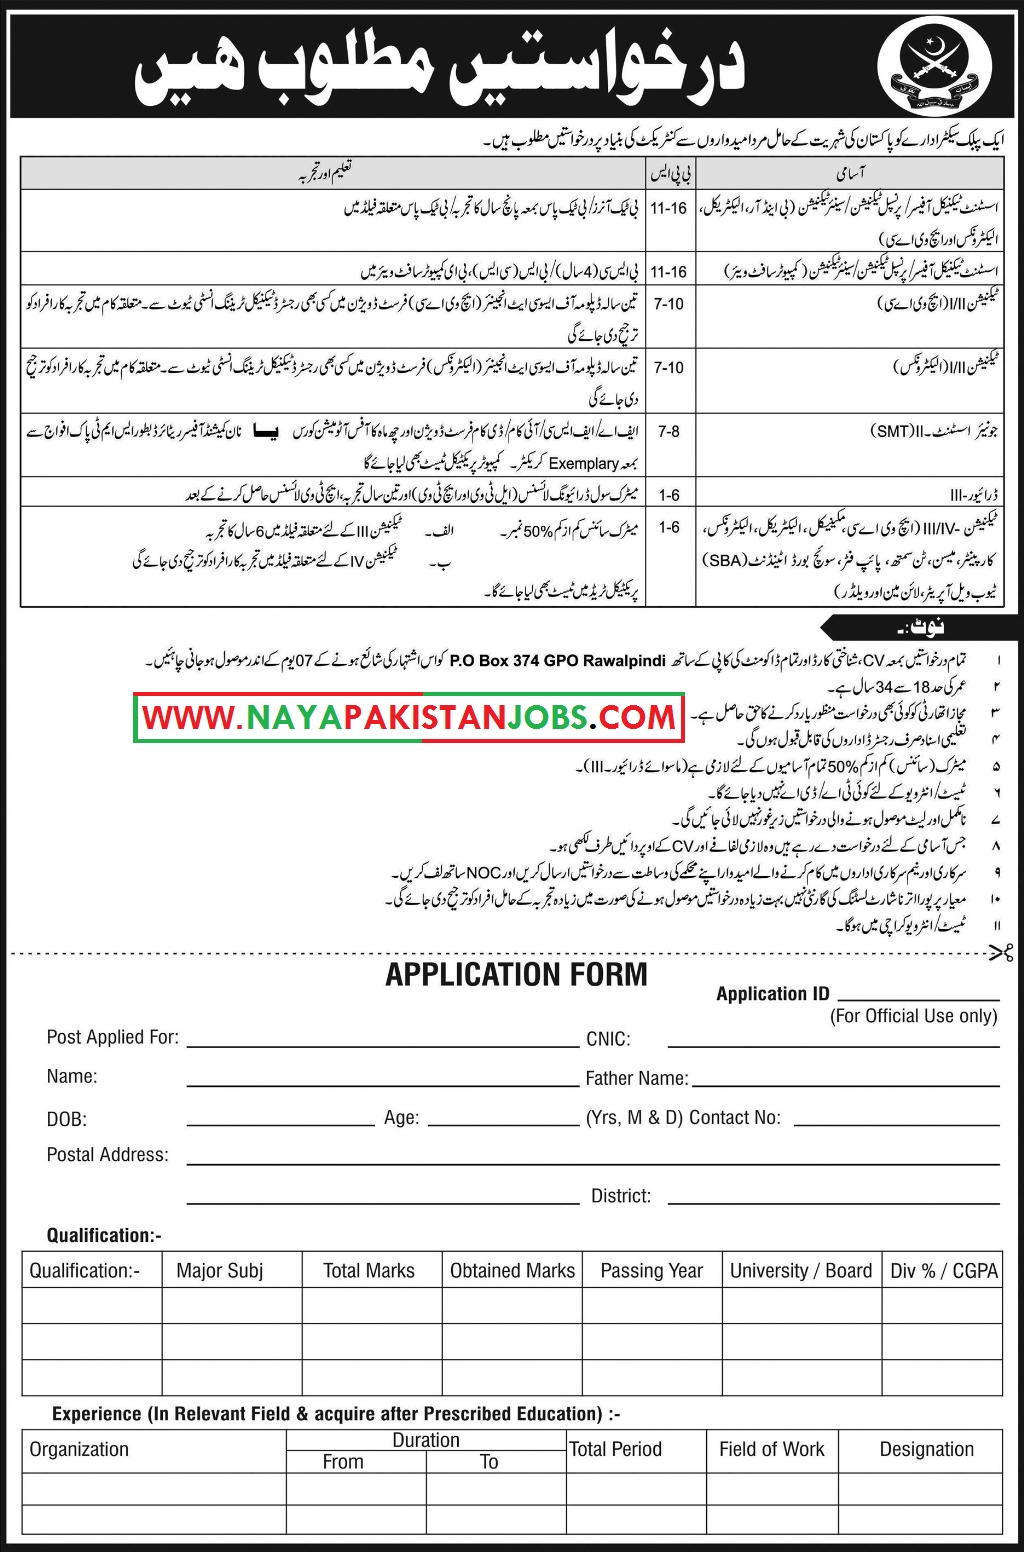 pak army jobs rawalpindi, Pakistan Army Jobs 2019 Feb | PO Box 347 GPO Rawalpindi